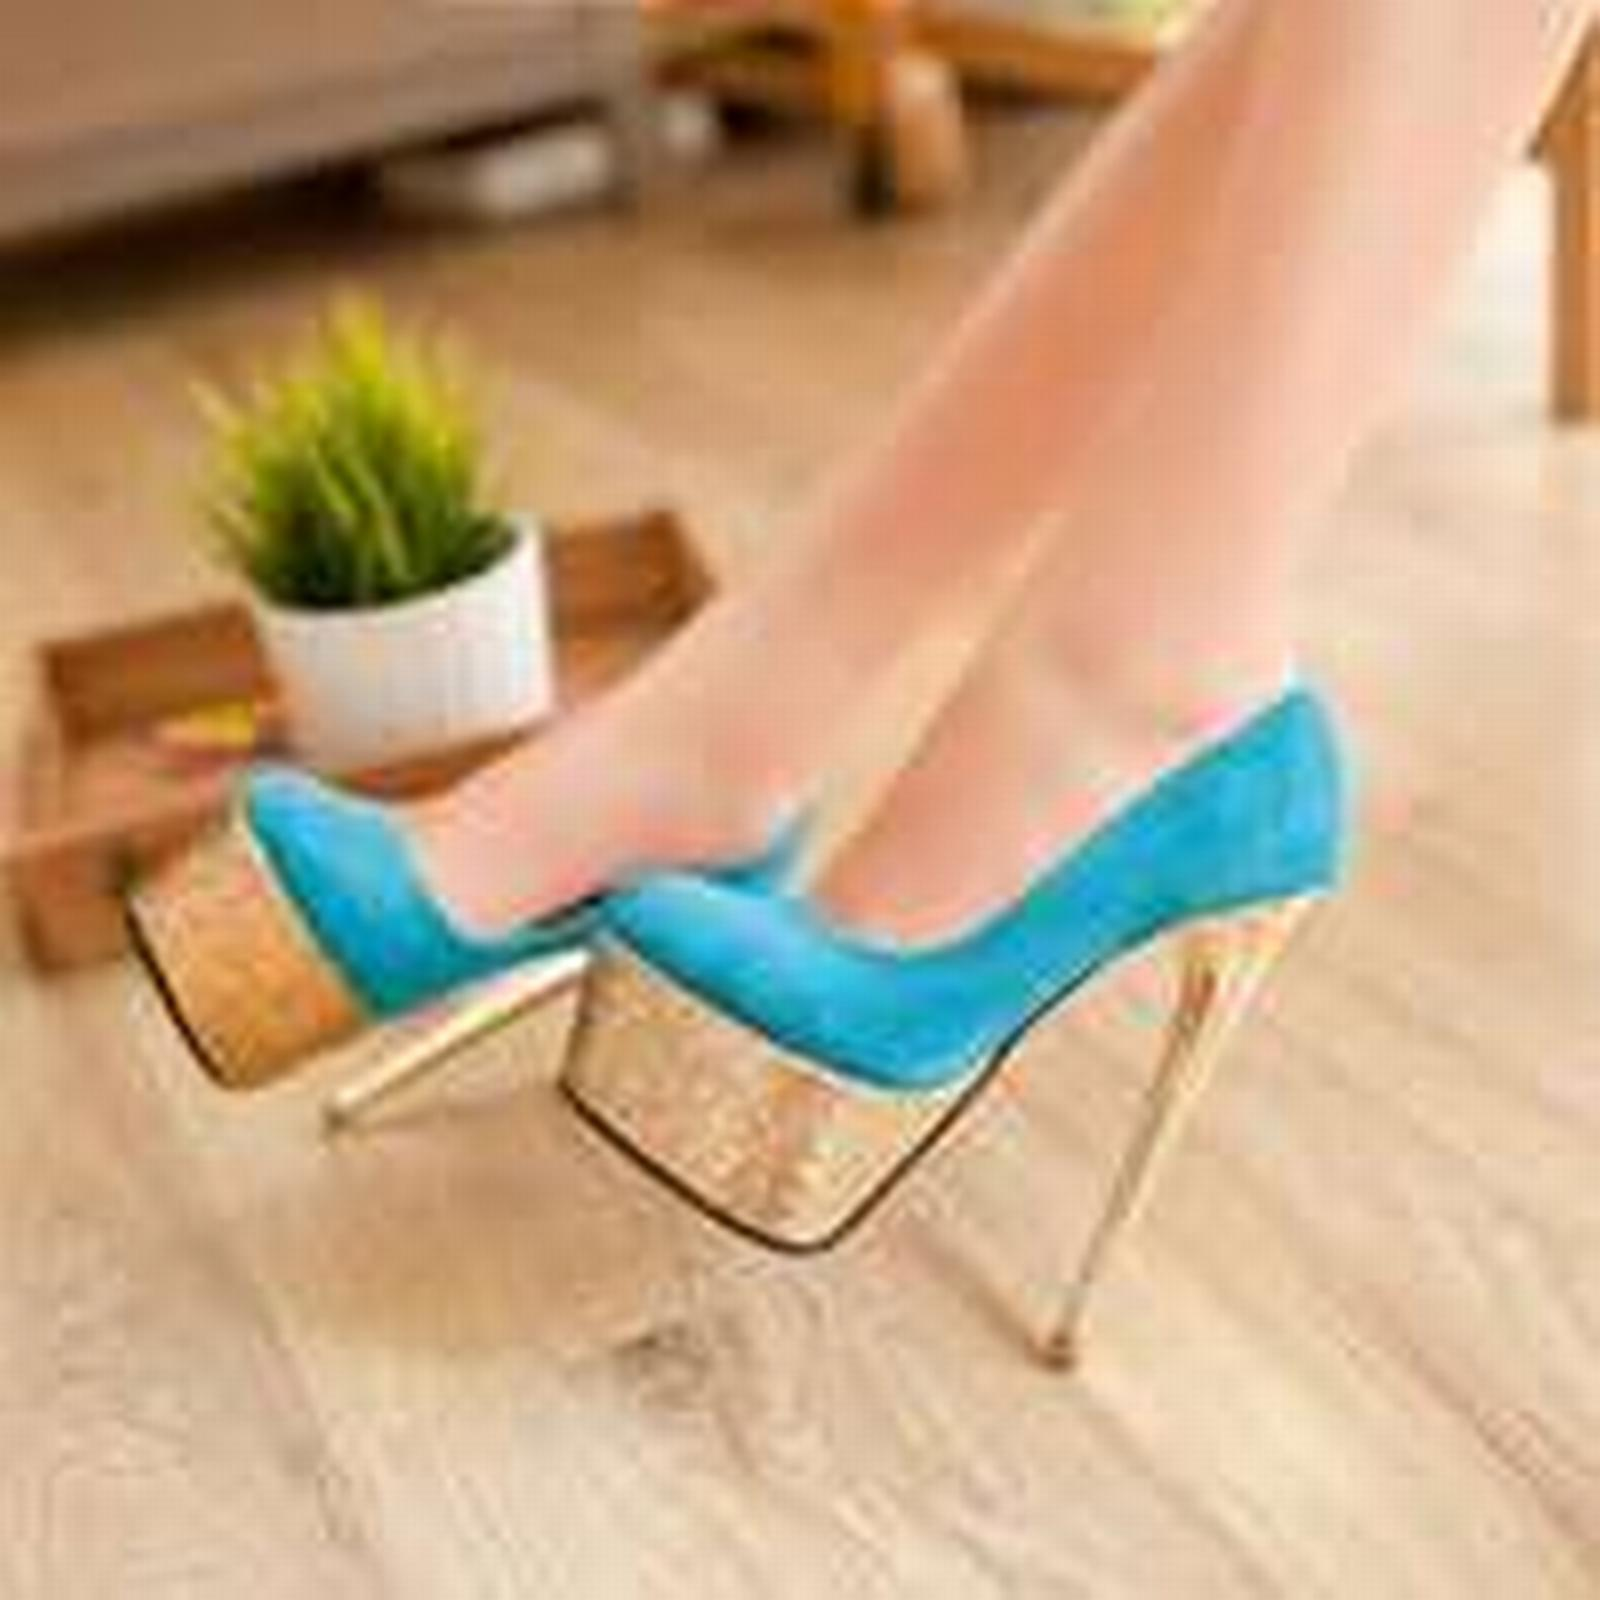 Bonanza (Global) PP245 sweet thick plating heel pump with thick sweet sequin sole, US Size 4-9, blue beb409